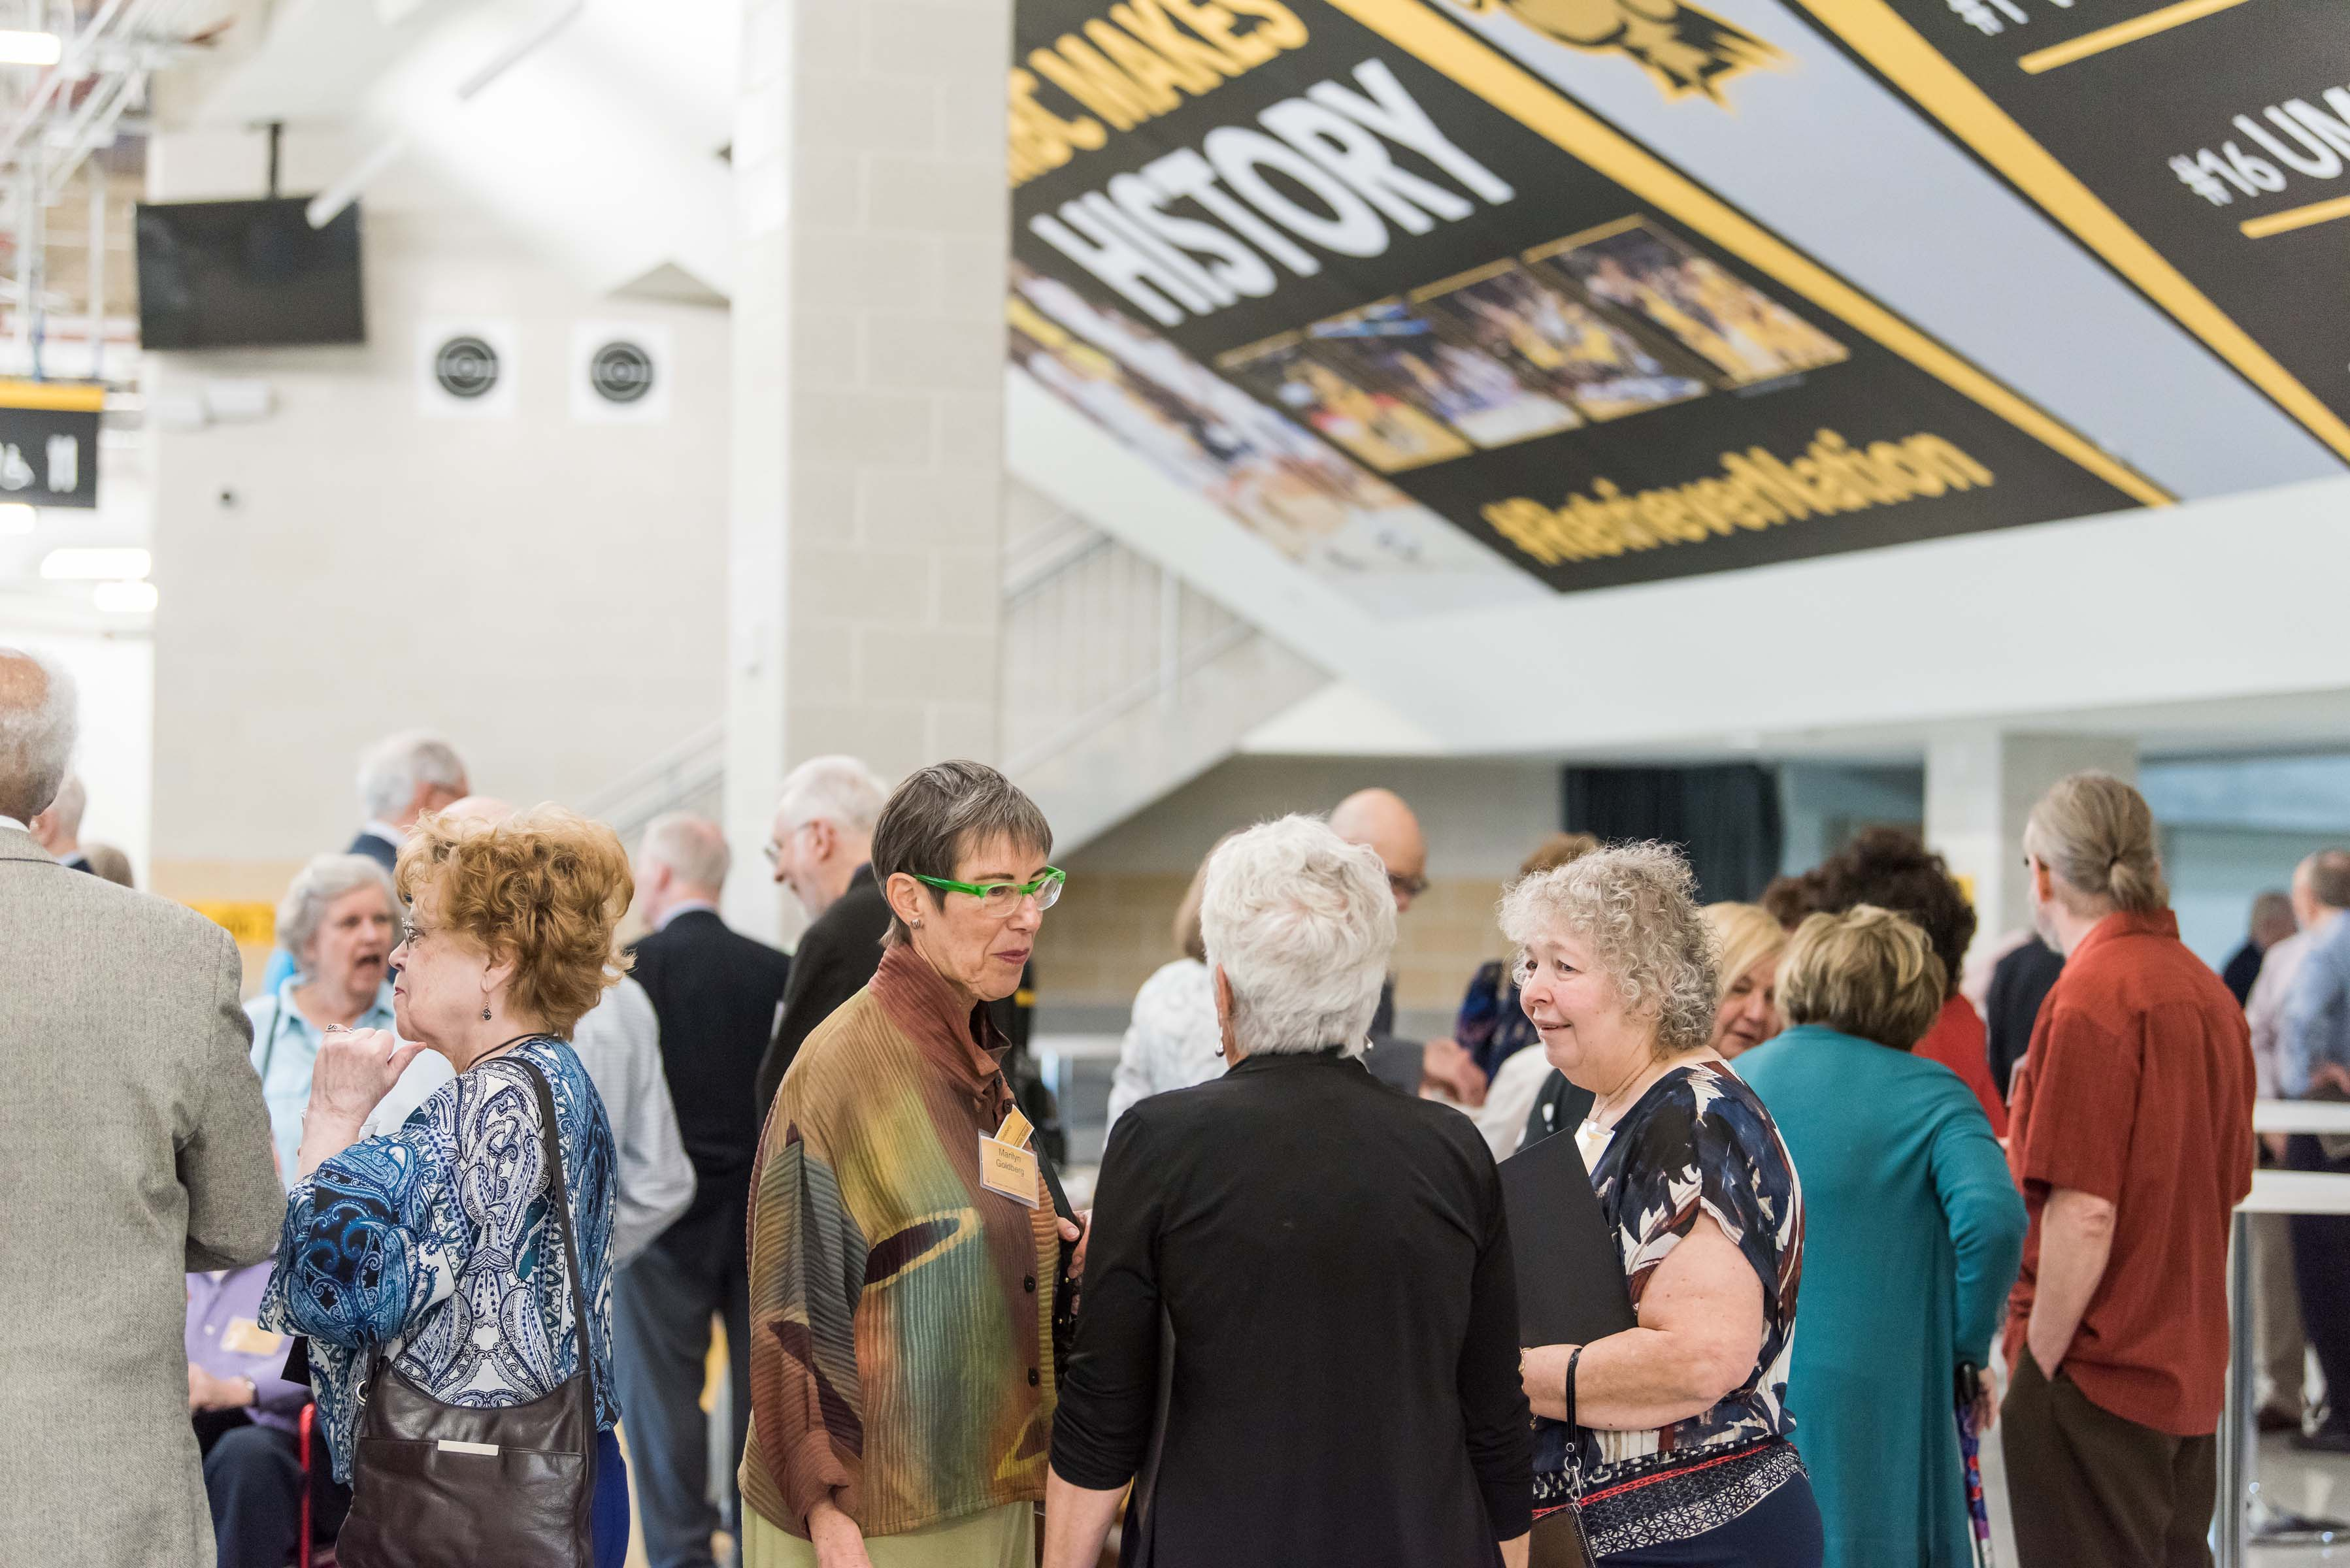 People talking UMBC Makes History sign in background at Wisdom Institute lunch